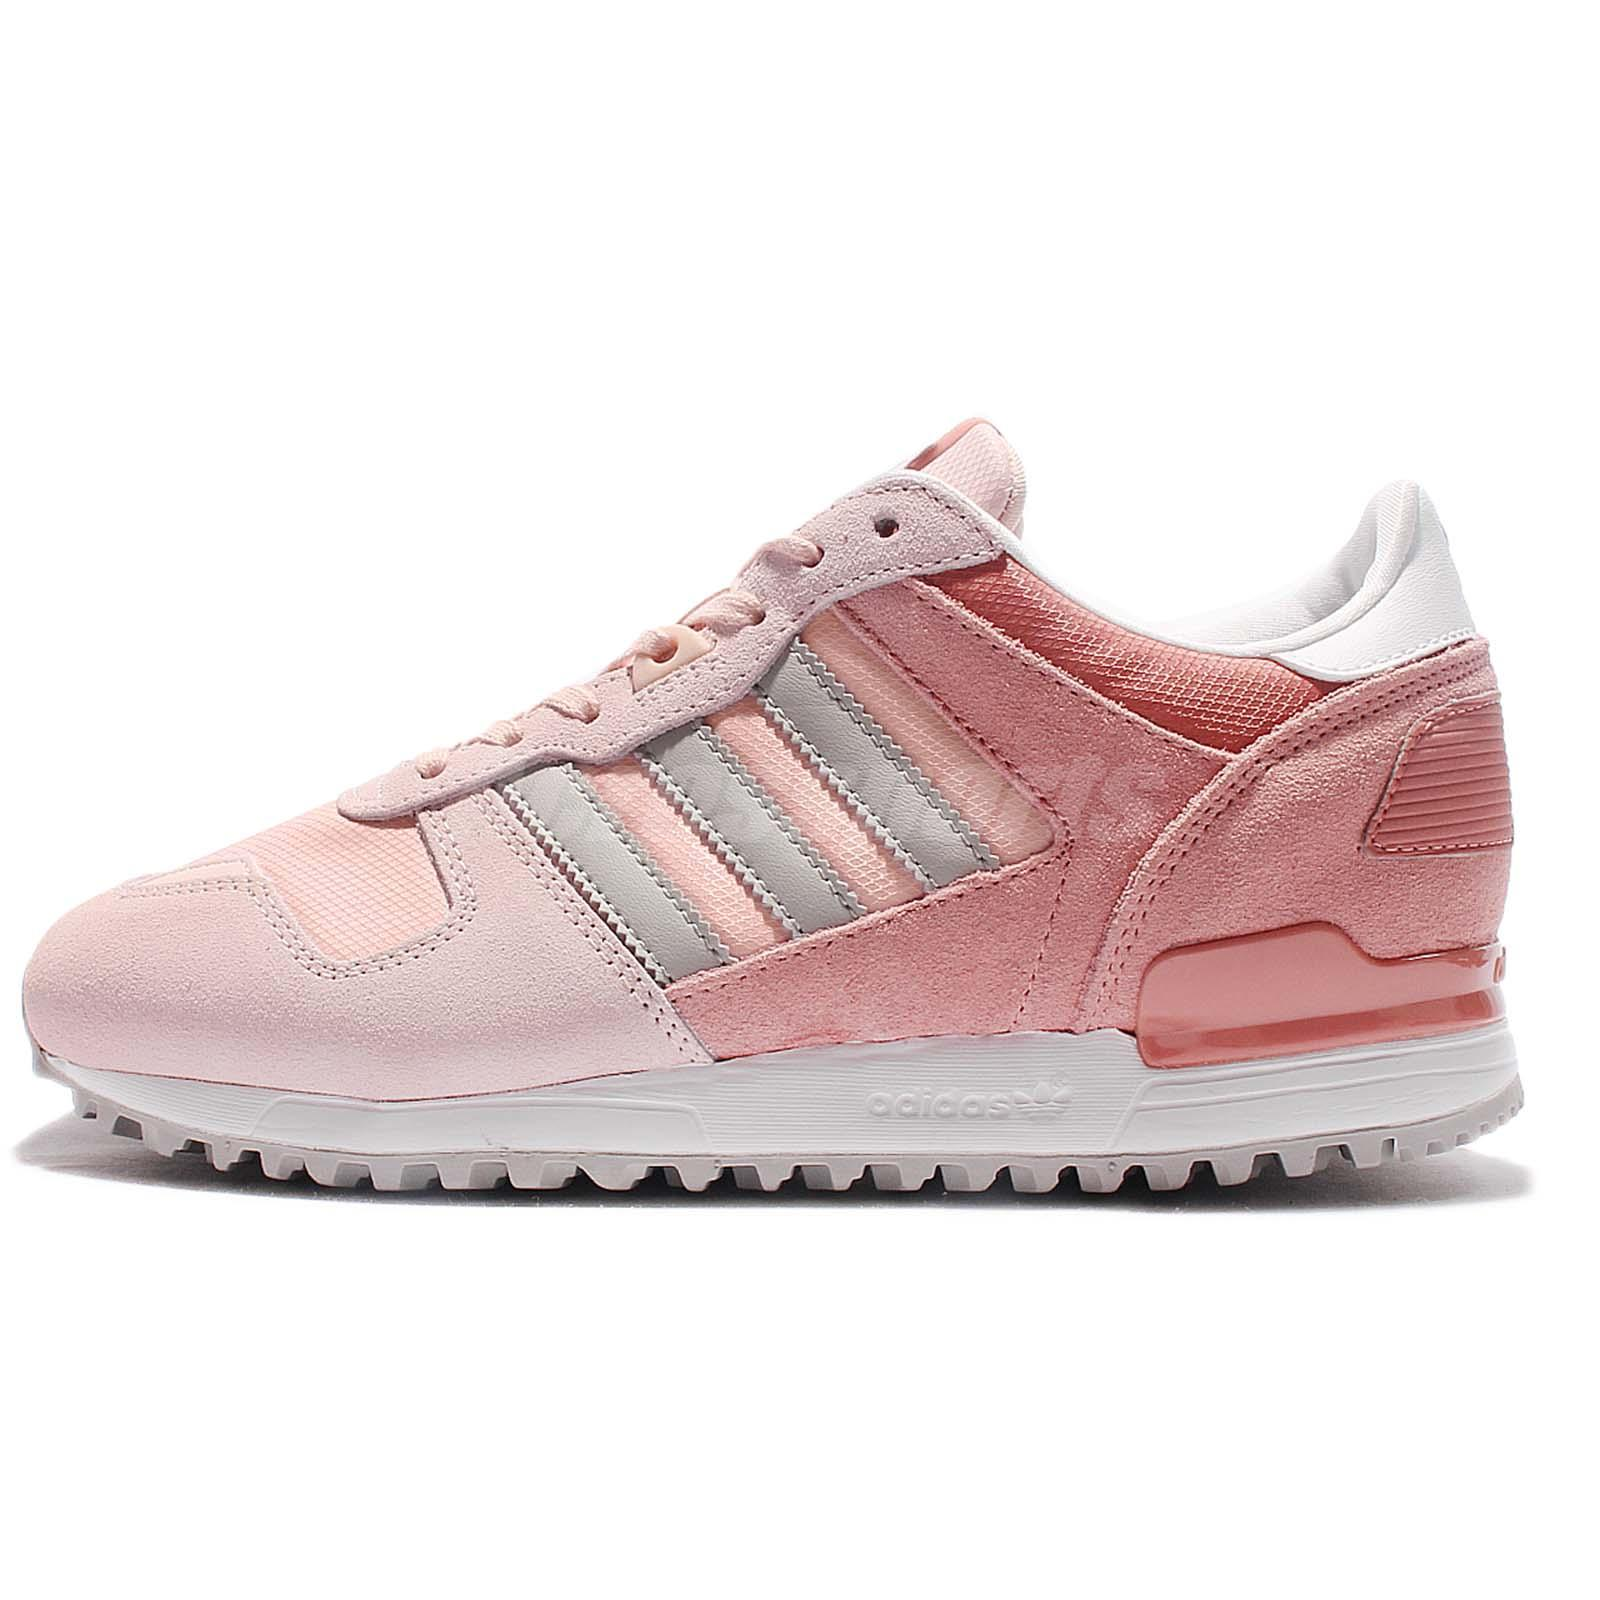 adidas Originals ZX 700 W Pink Grey Women Classic Shoes Sneakers Trainers  S79798